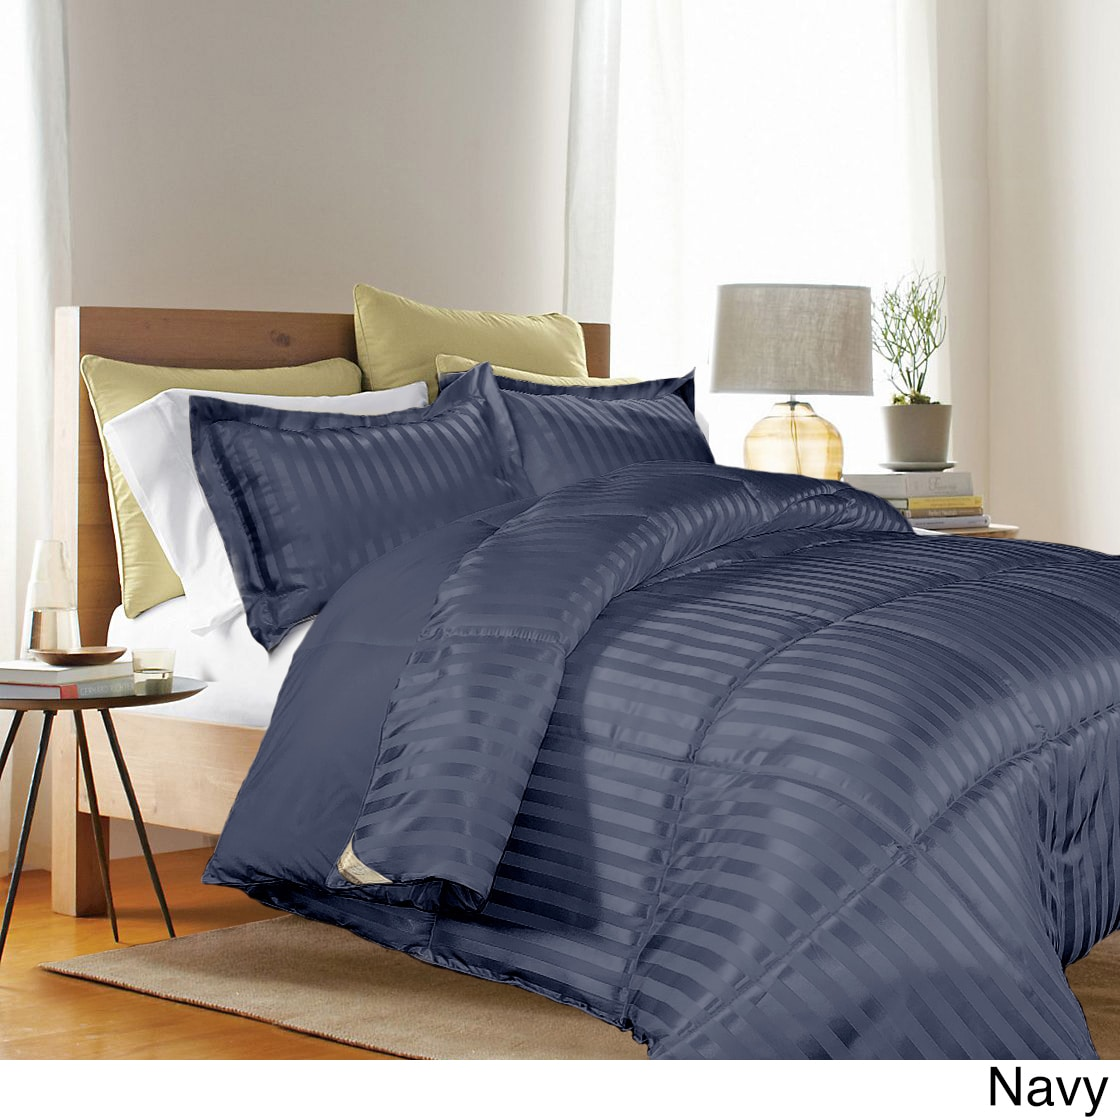 Bedding Quilts, Bedspreads & Coverlets The Best Bedspread Inspiration 3 Piece Reversible Comforter/ Bed Throw